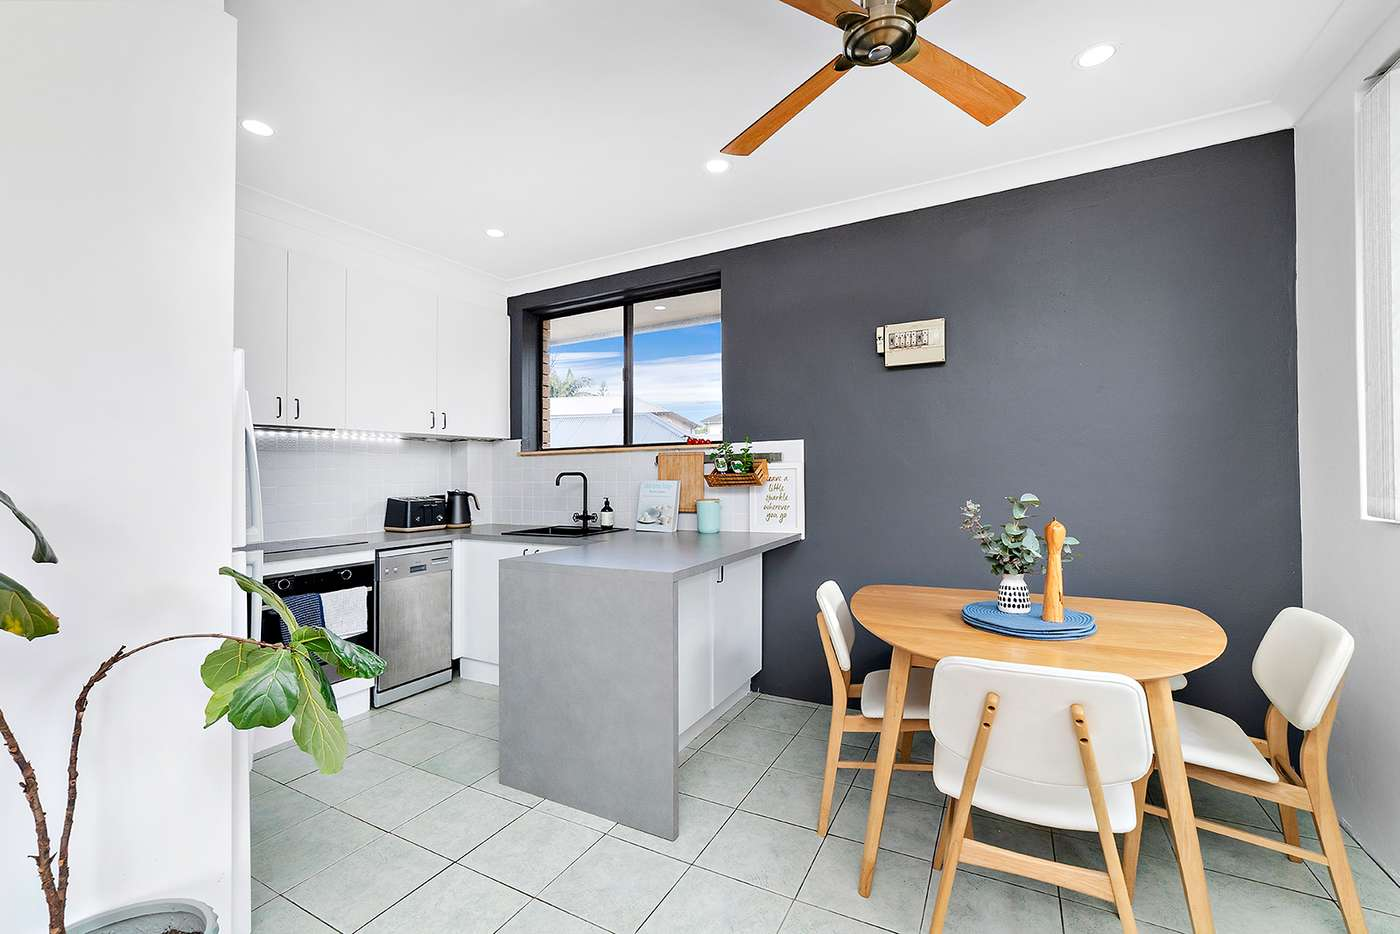 Main view of Homely unit listing, 5/7 David Street, West Wollongong NSW 2500